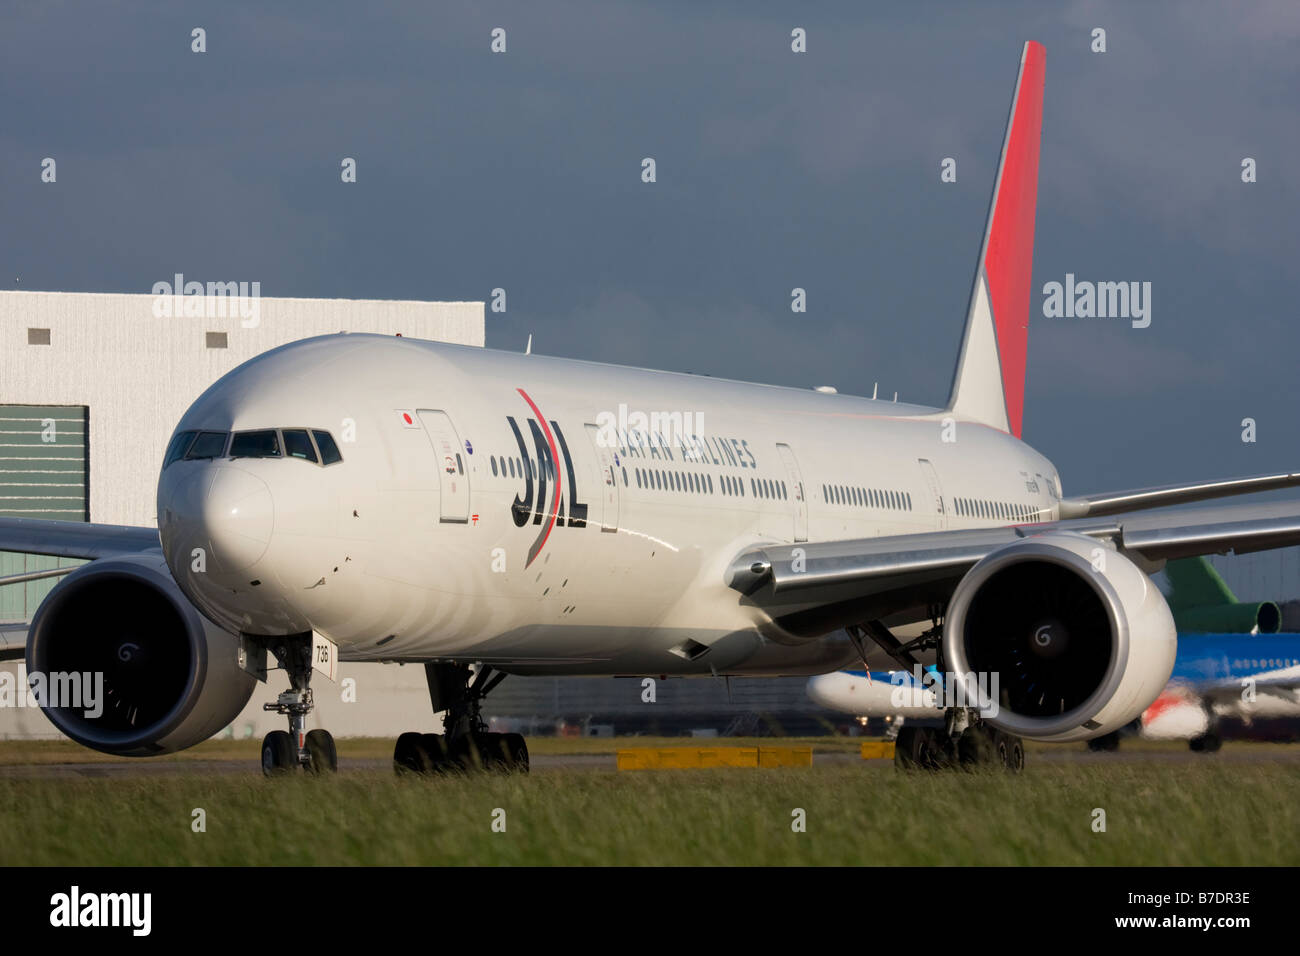 Japan Airlines - JAL Boeing 777-346/ER taxiing for departure at London Heathrow airport. - Stock Image